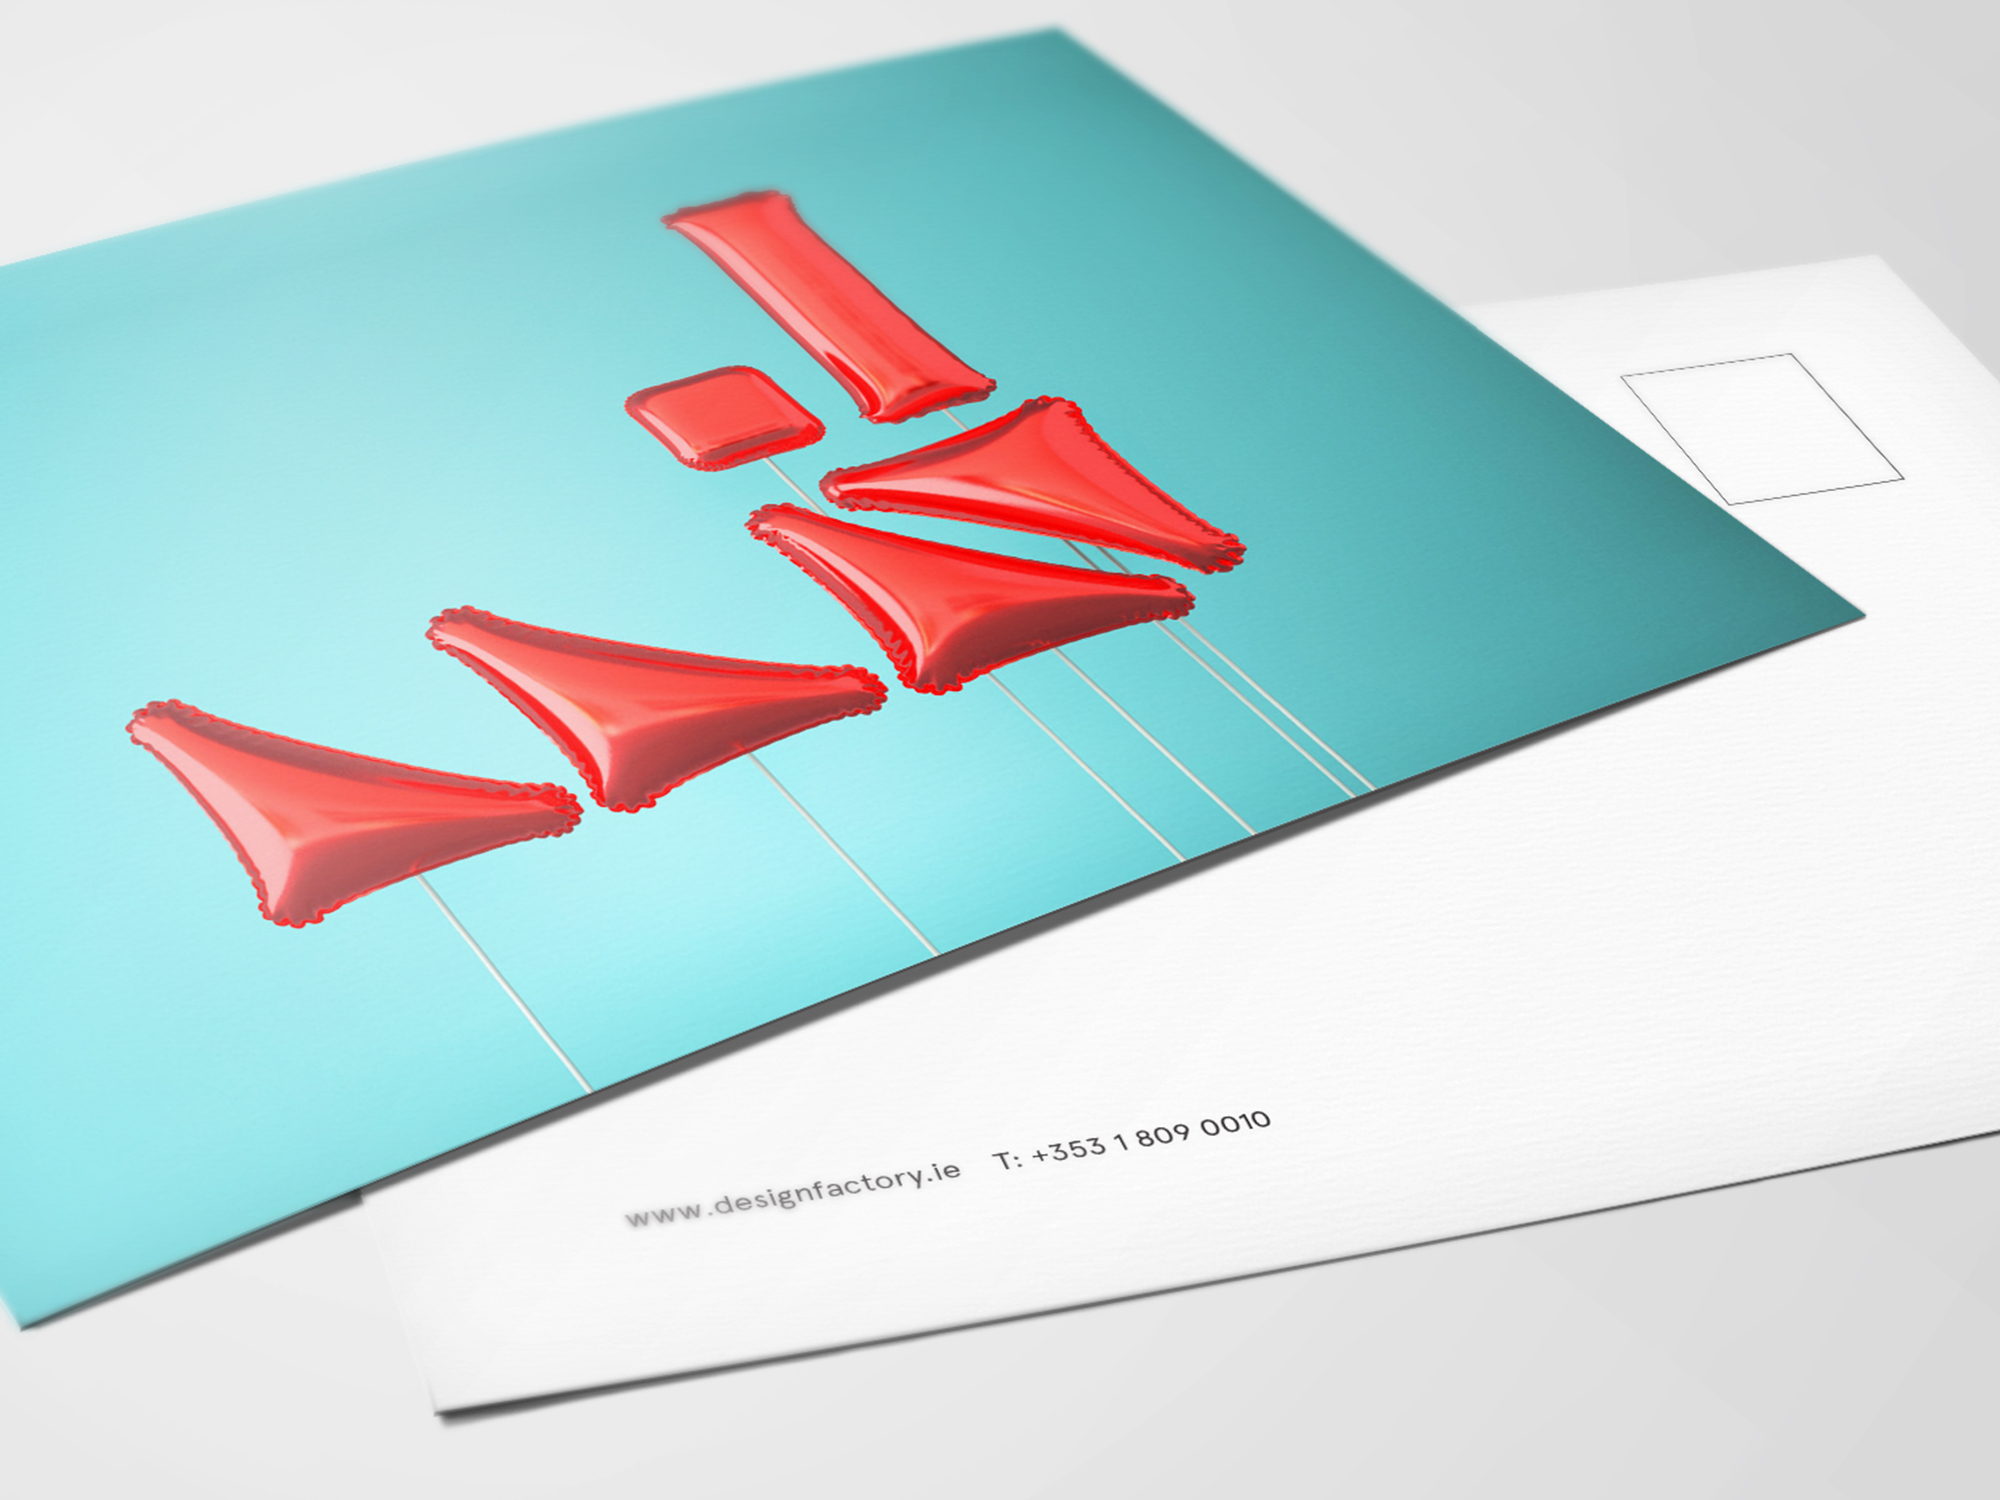 Cover image: Design Factory 3D Branding